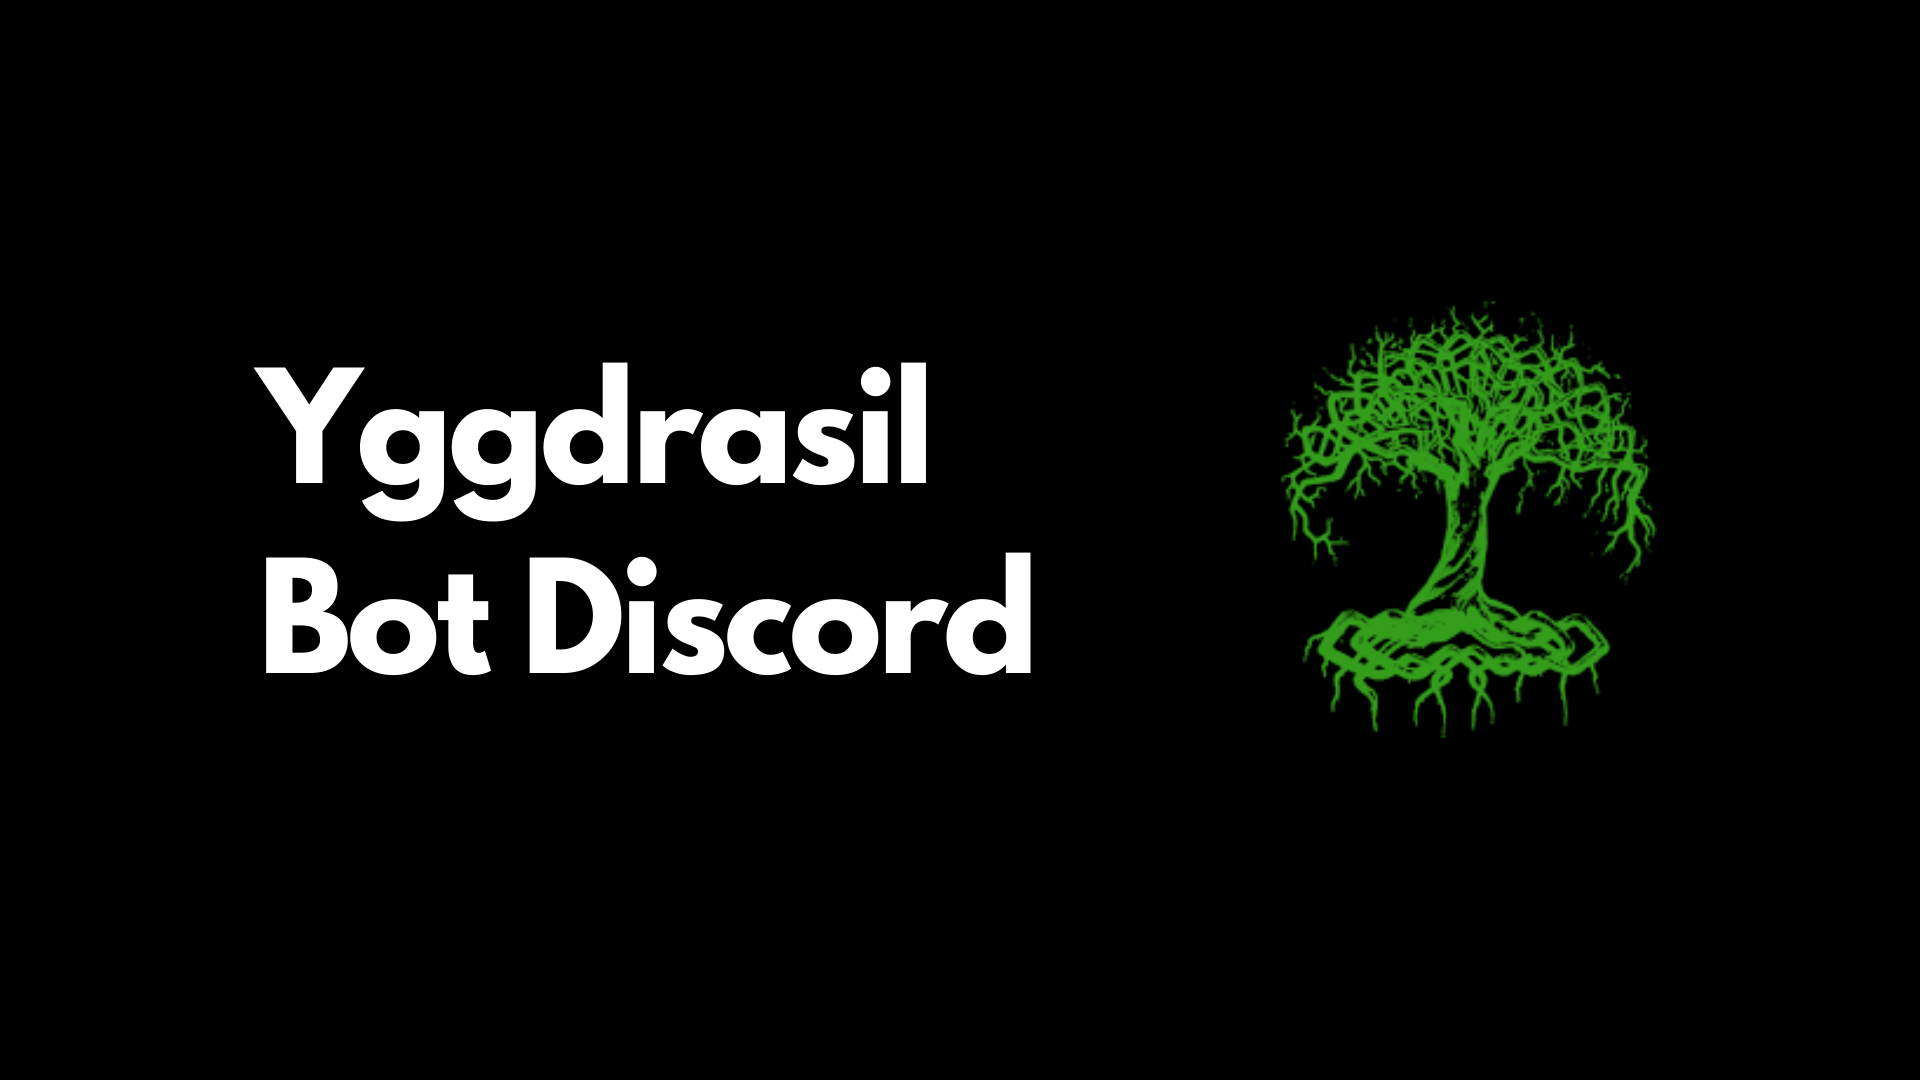 How to use Yggdrasil Bot Discord